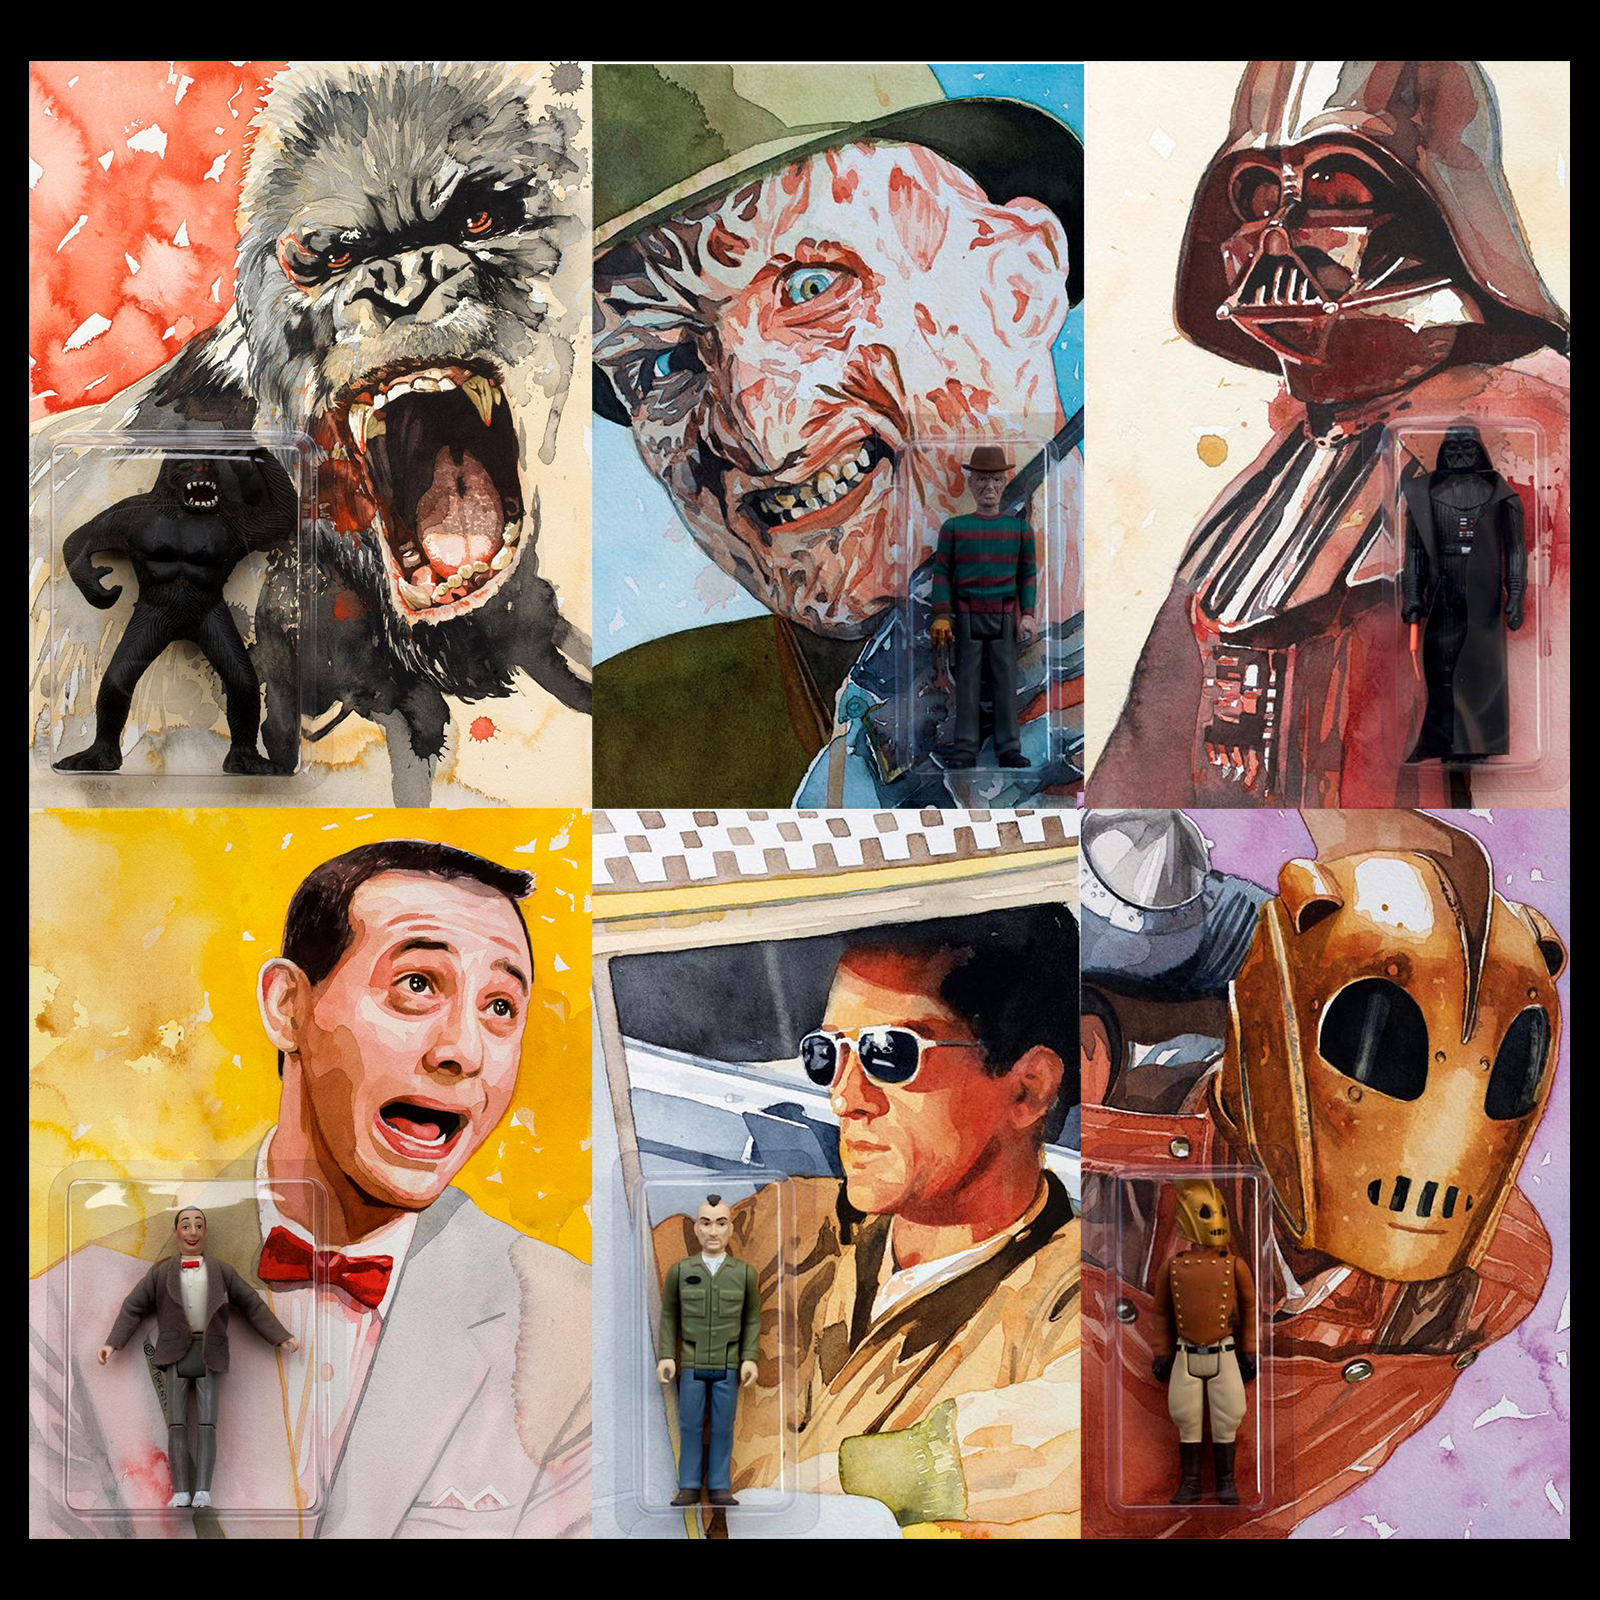 Influential Figures by Lou Pimentel at Gallery1988